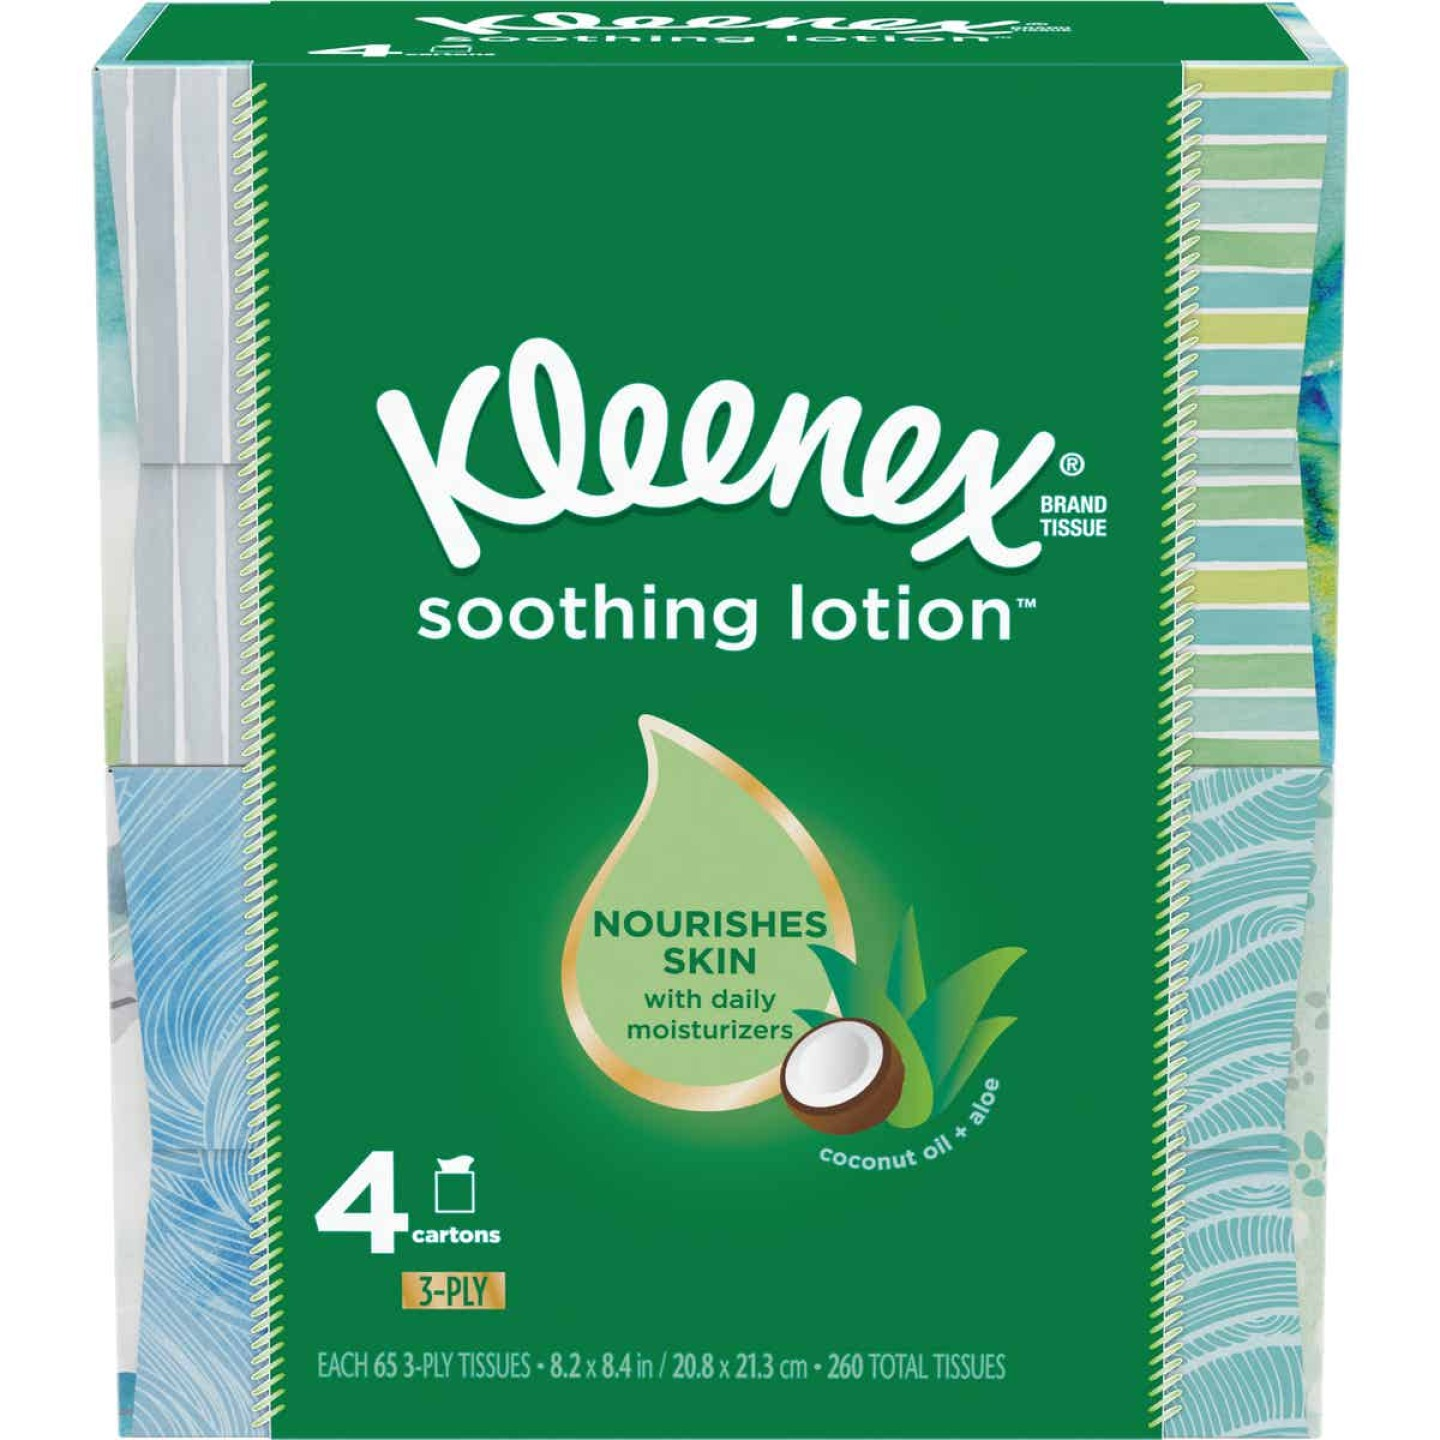 Kleenex Soothing Lotion Facial Tissues (4 Pack) Image 1